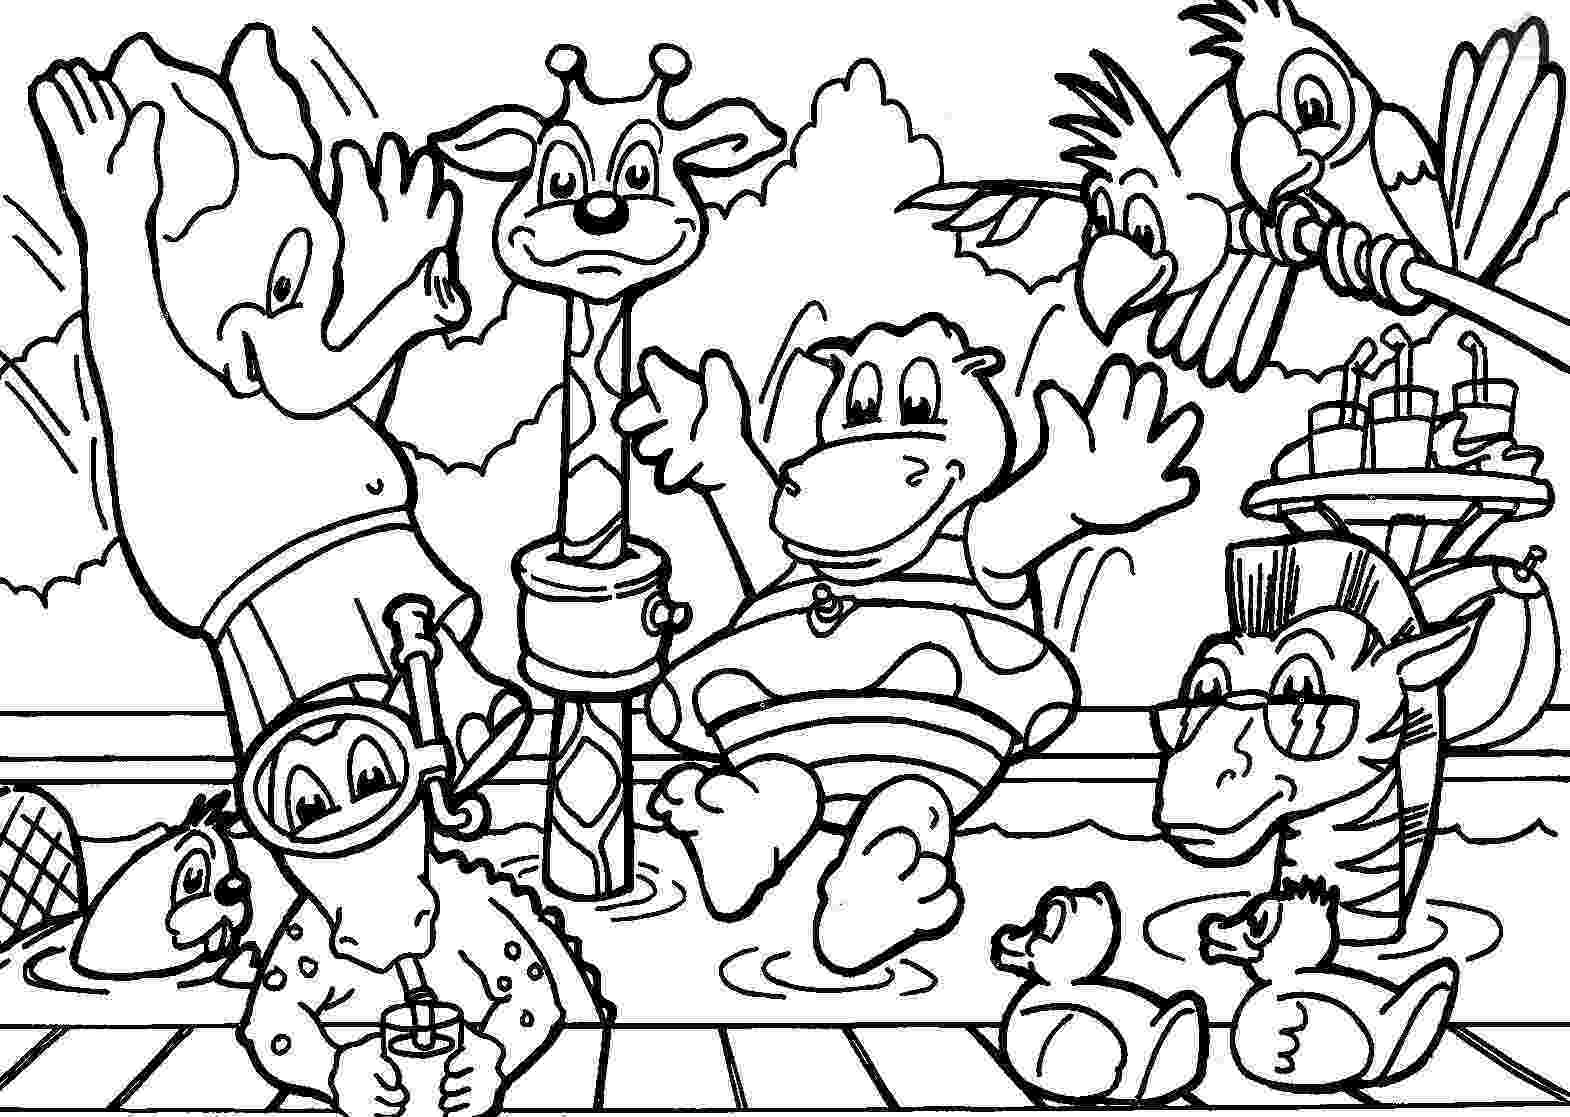 animal coloring sheets cartoon animals coloring pages for kids gtgt disney coloring animal coloring sheets